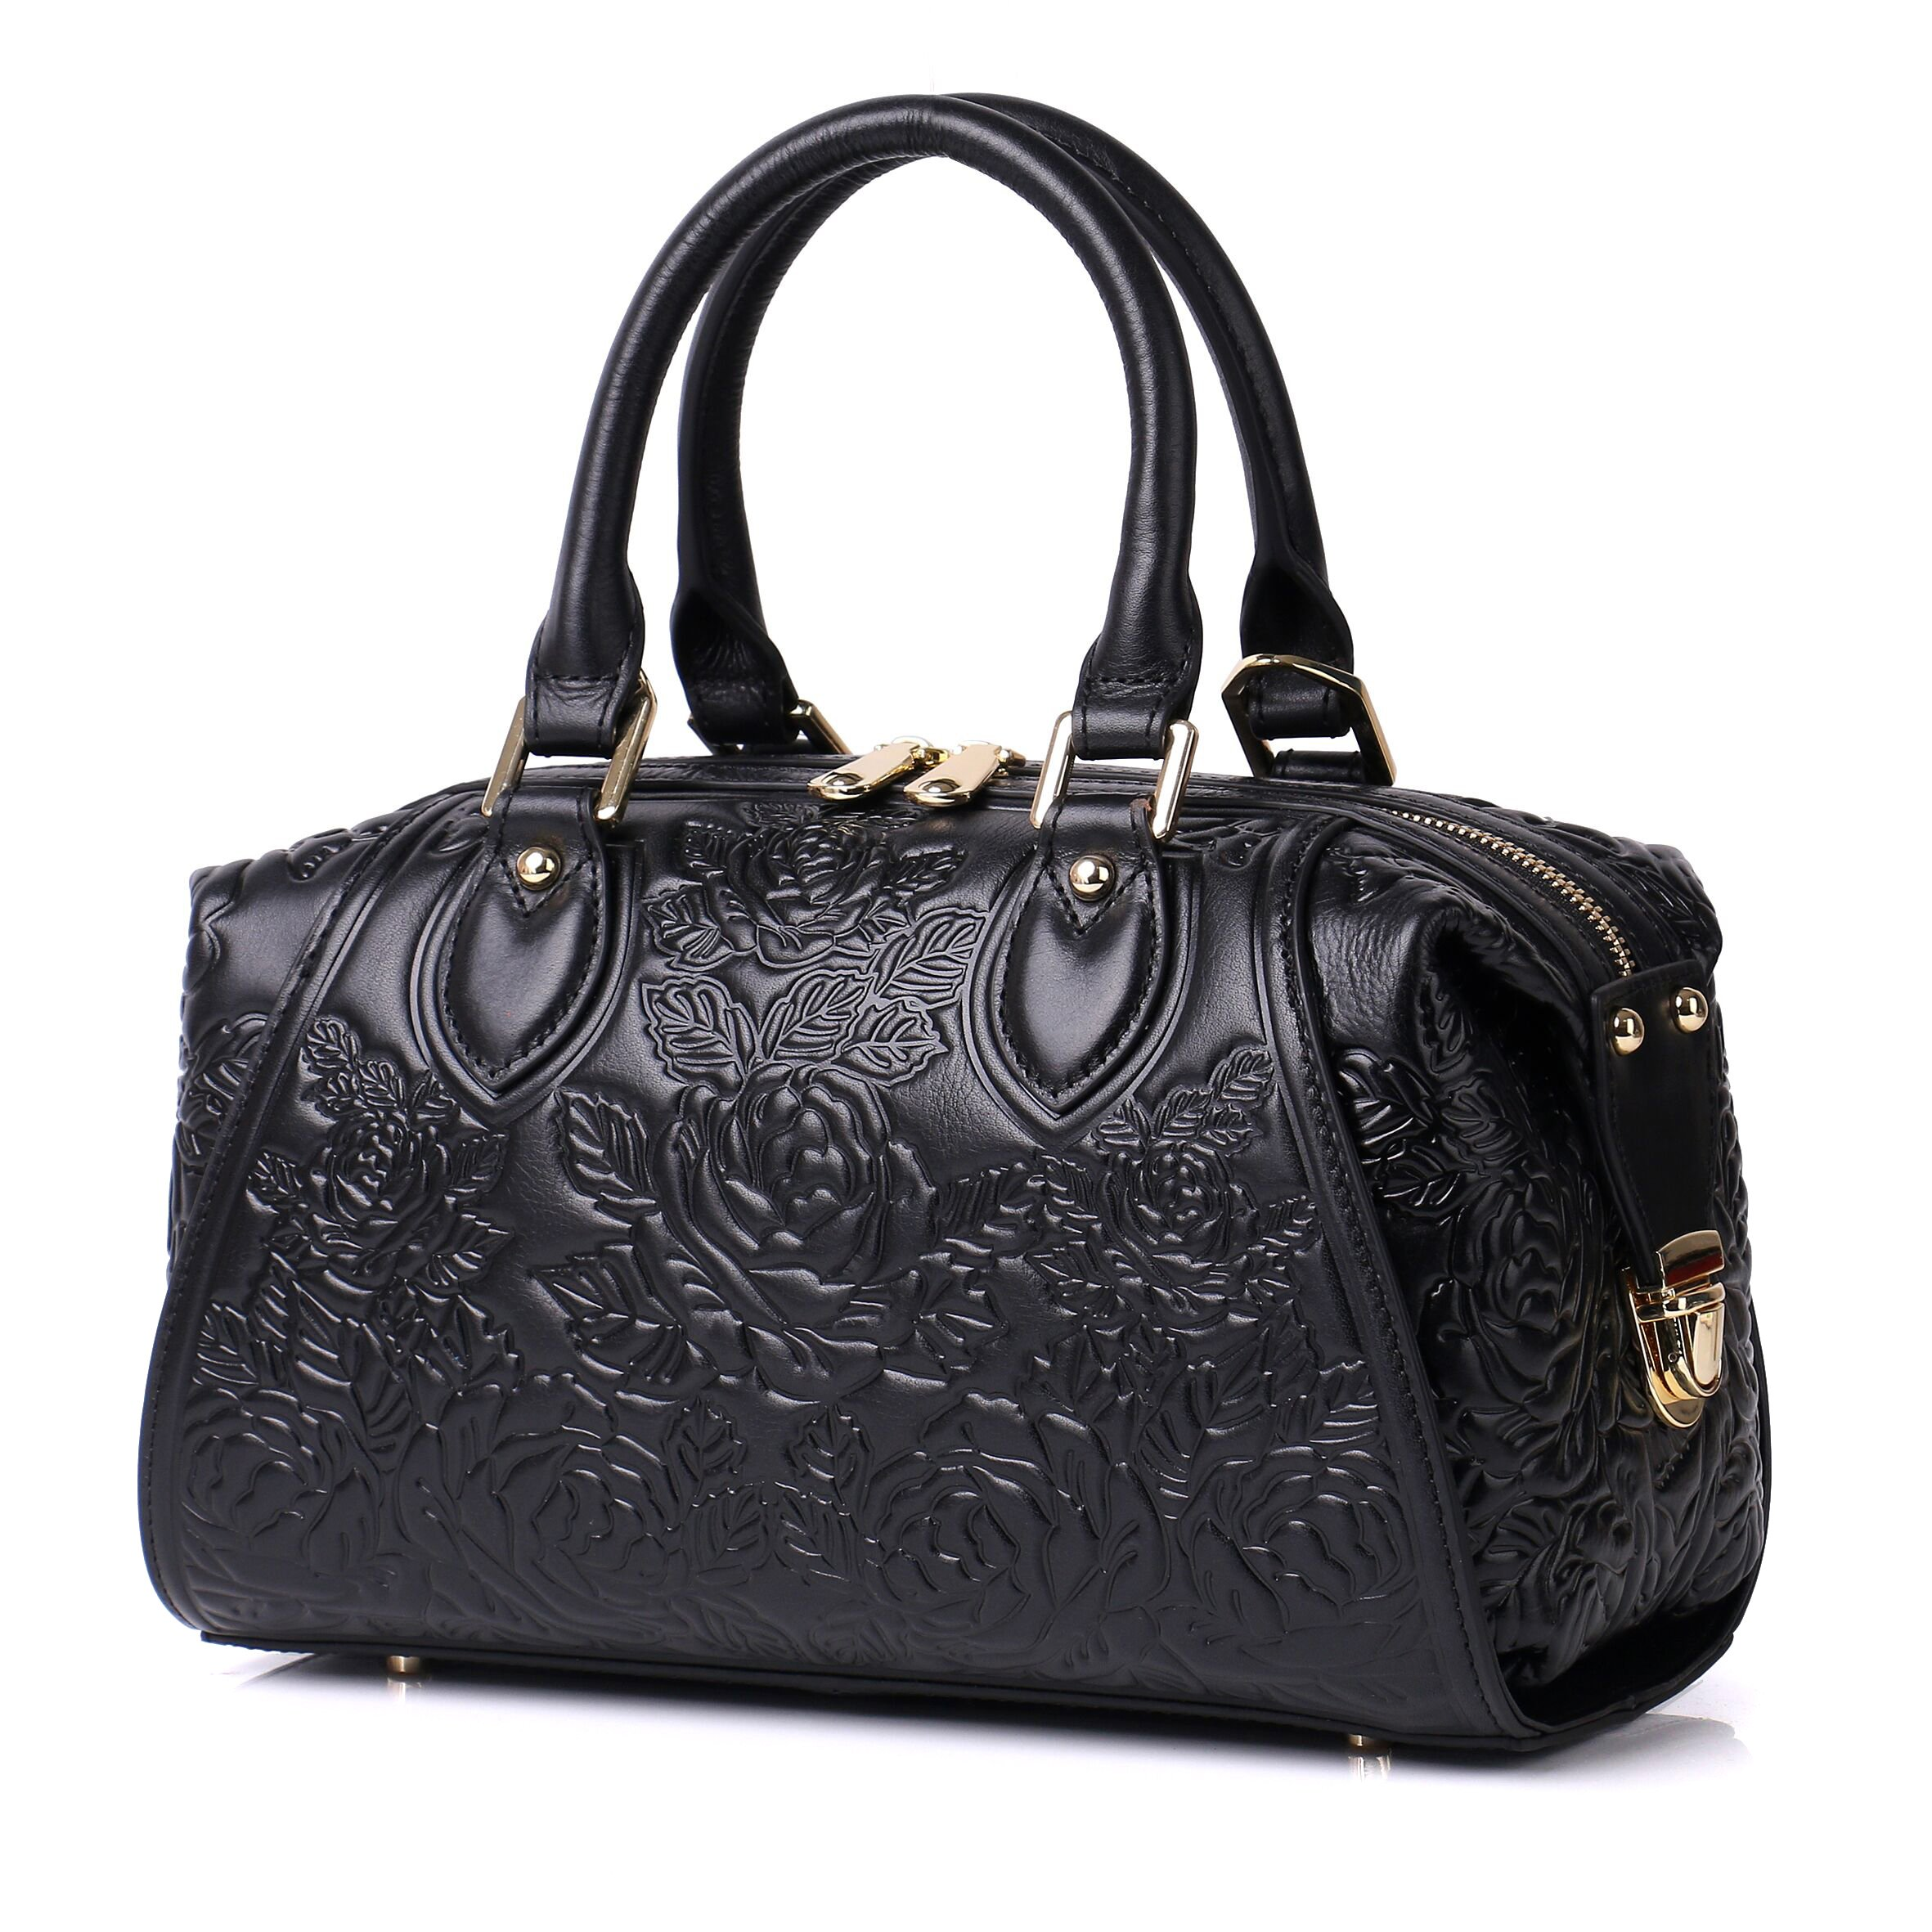 APHISON Designer Unique Embossed Floral Header Layer Cowhide Tote Style Ladies Top Handle Bags Handbags (Black)